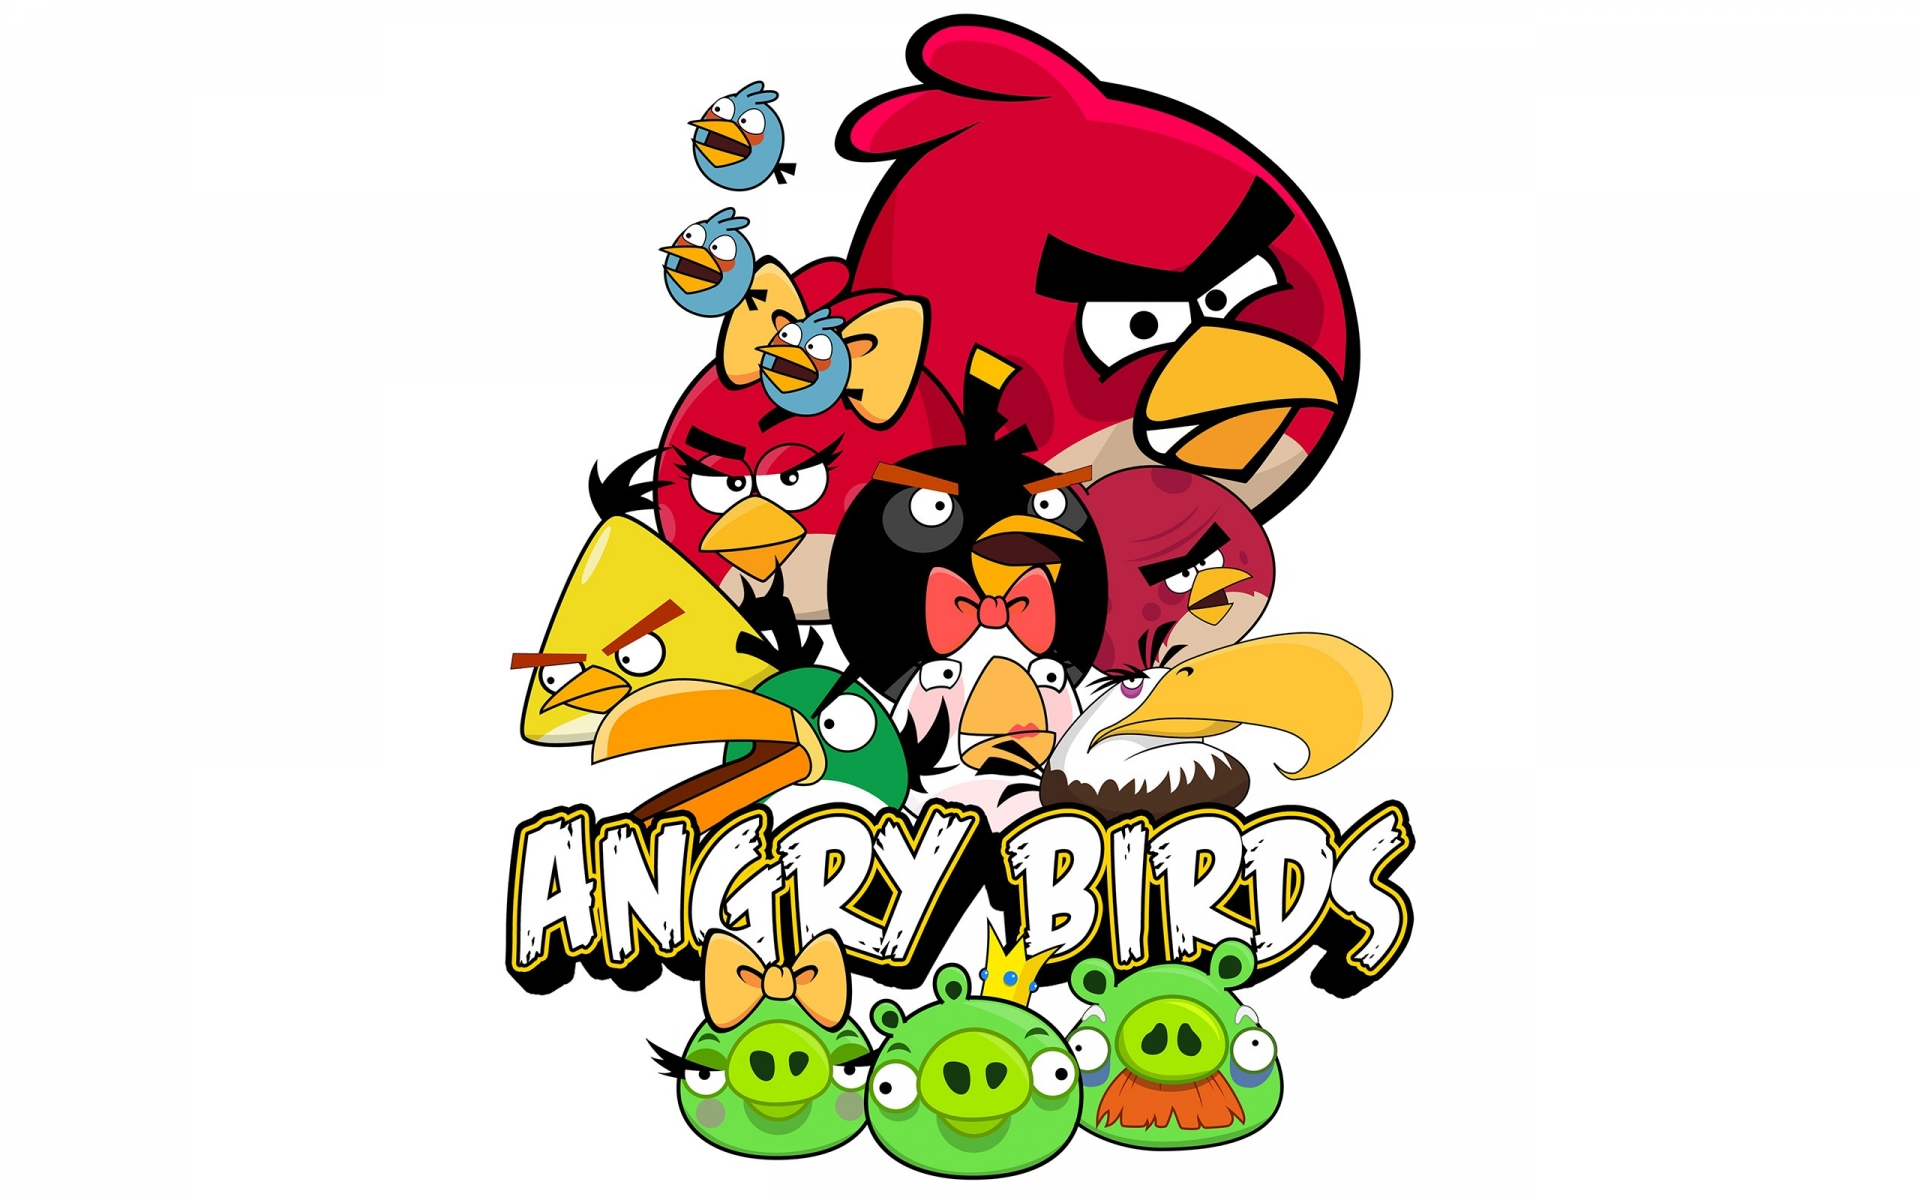 Angry birds game HD wallpaper mytechshout Angry Birds Wallpapers HD  1920x1200